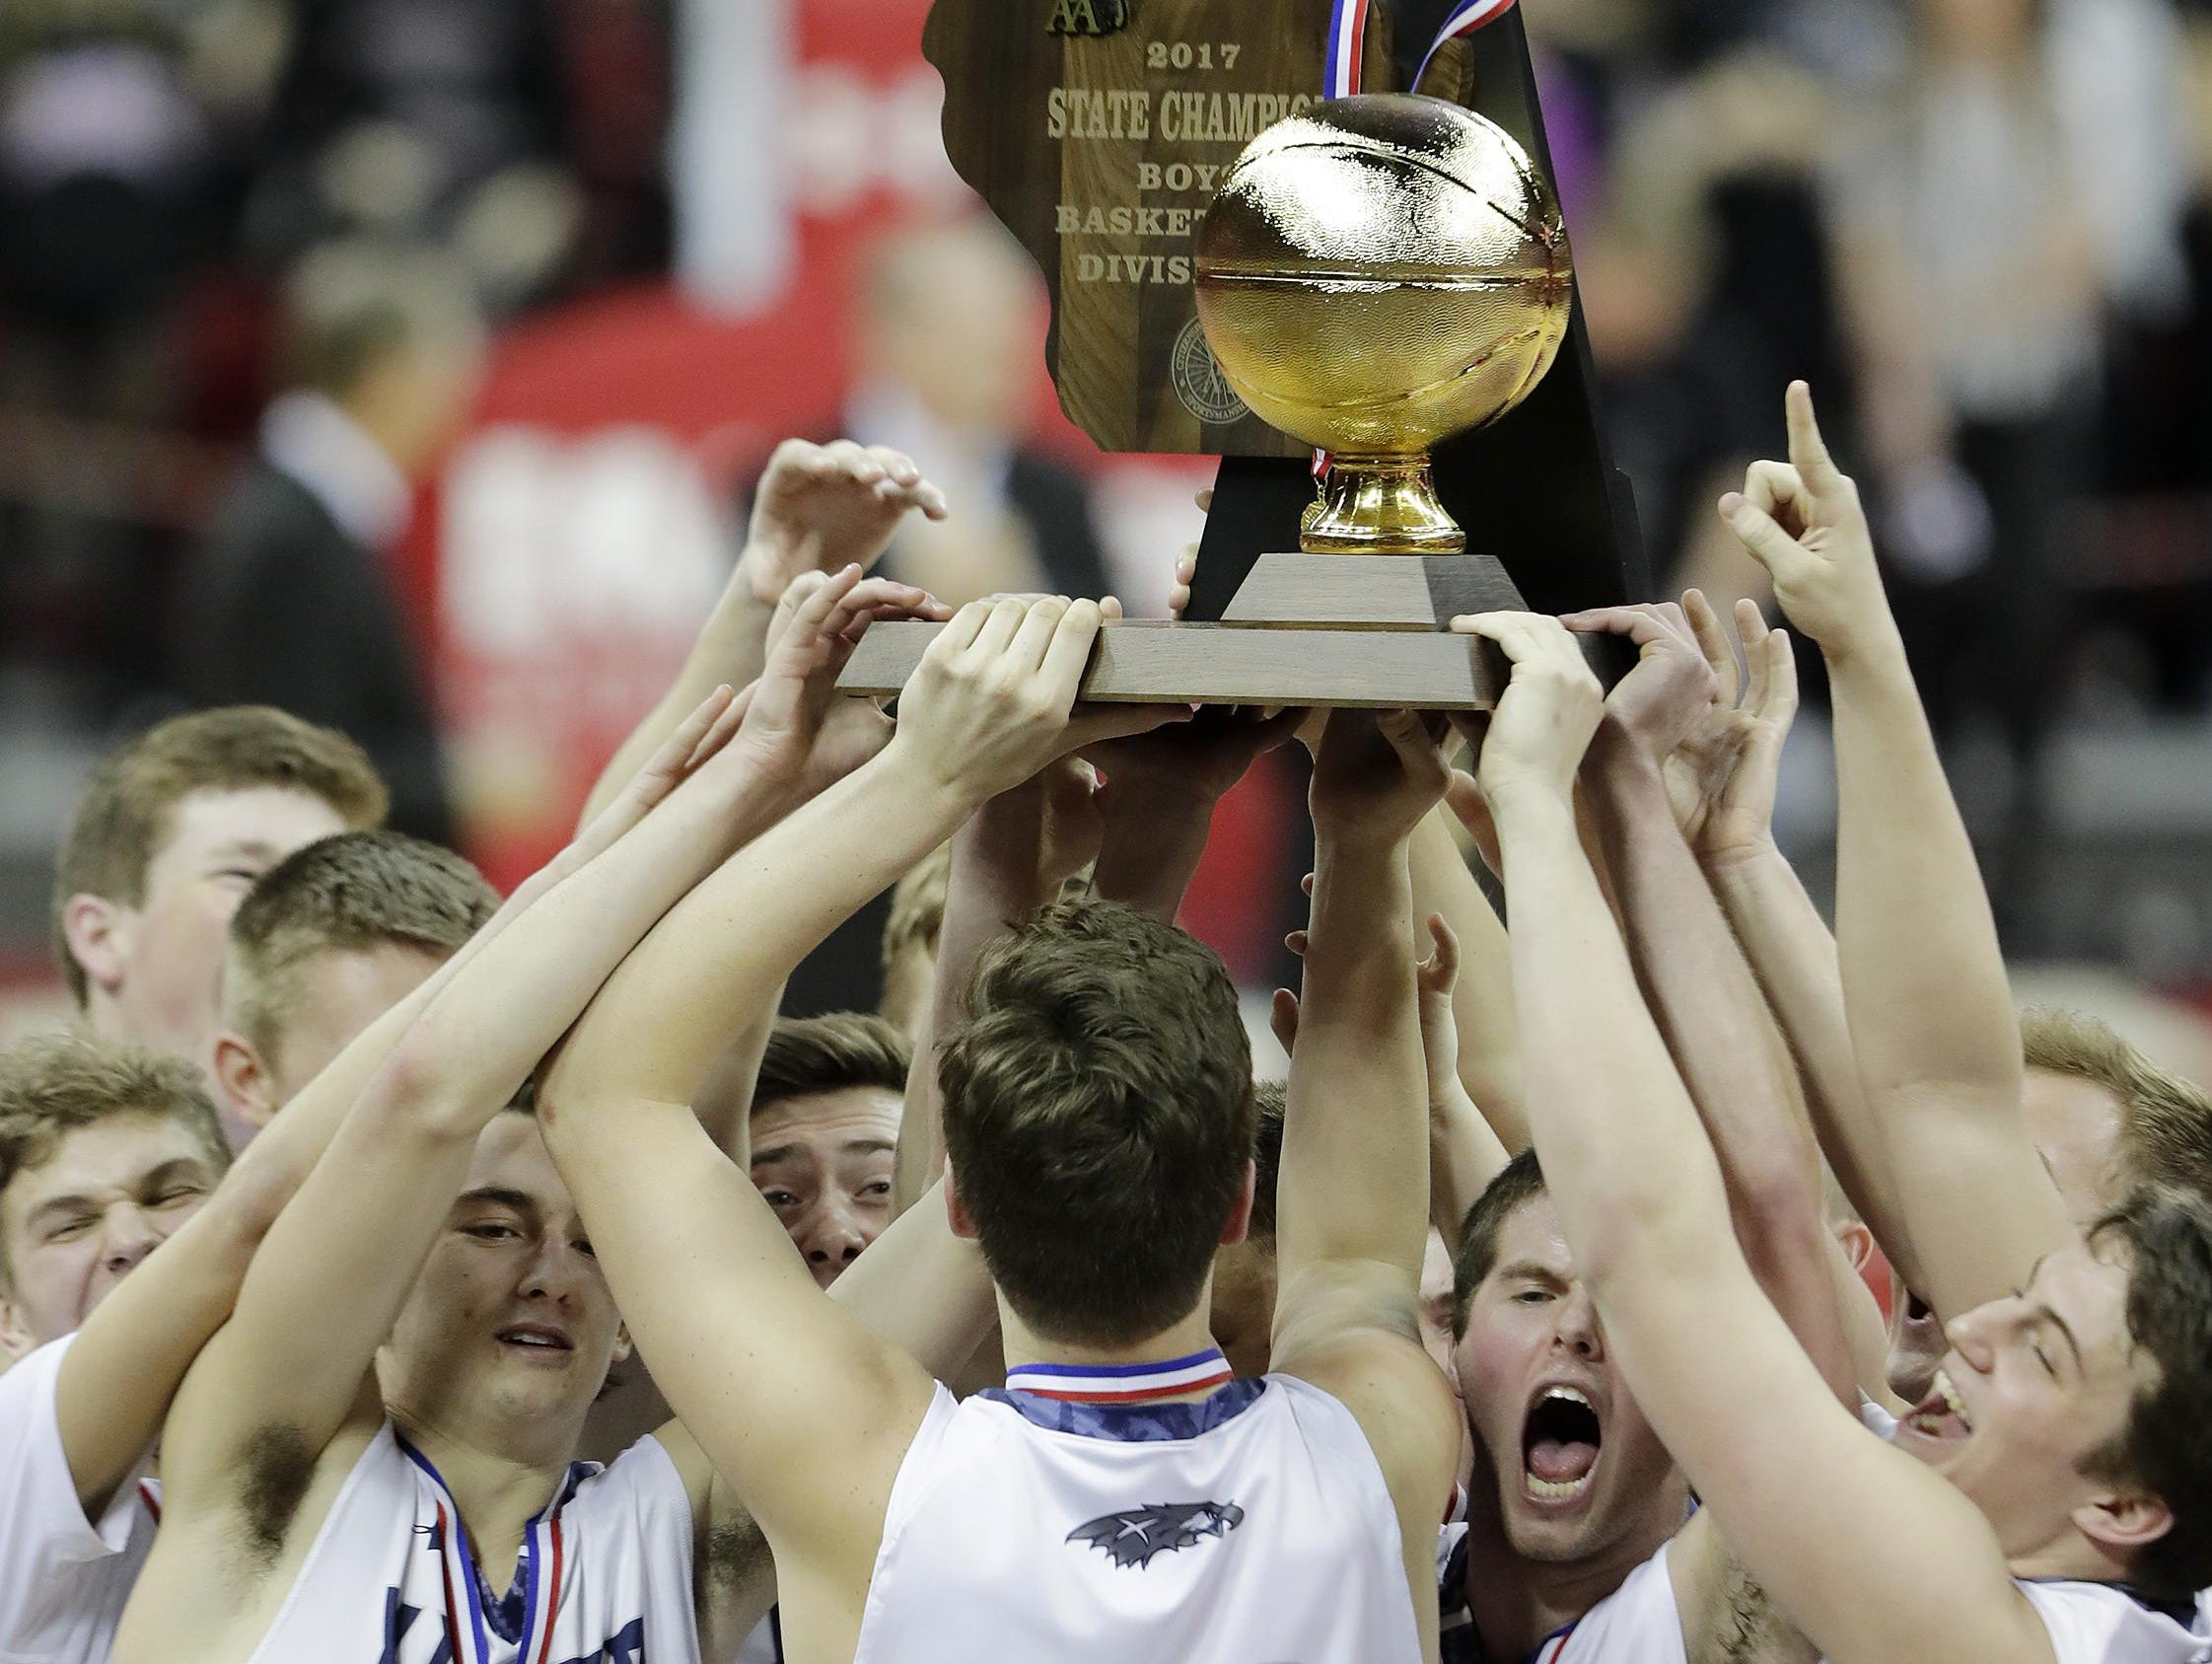 Xavier players celebrate with the trophy after the Division 3 championship game against Prescott on Saturday at the Kohl Center in Madison. See more photos at postcrescent.com.